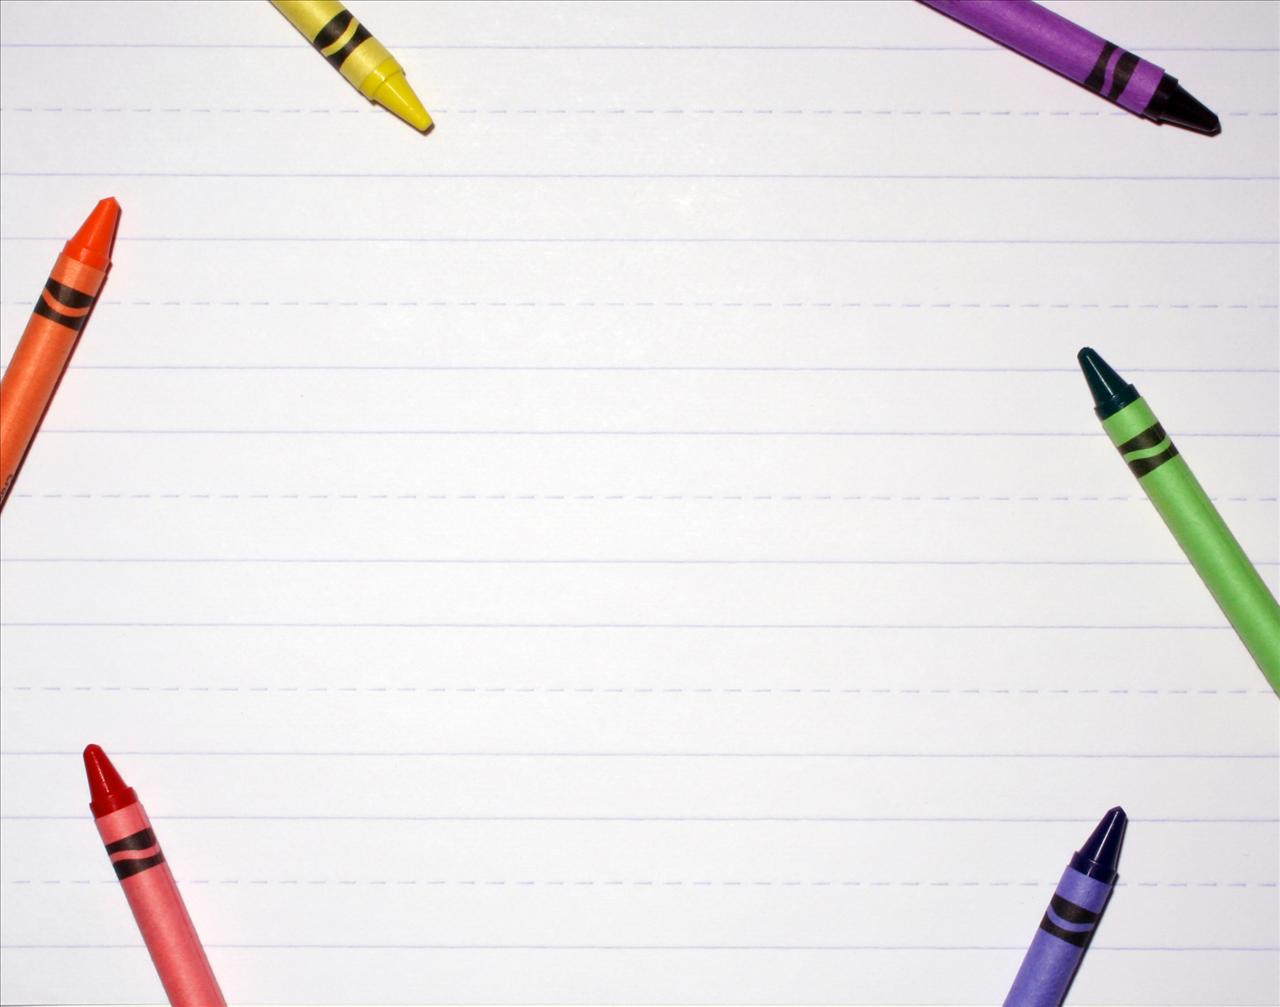 Frame backgrounds for border. Crayon clipart background powerpoint